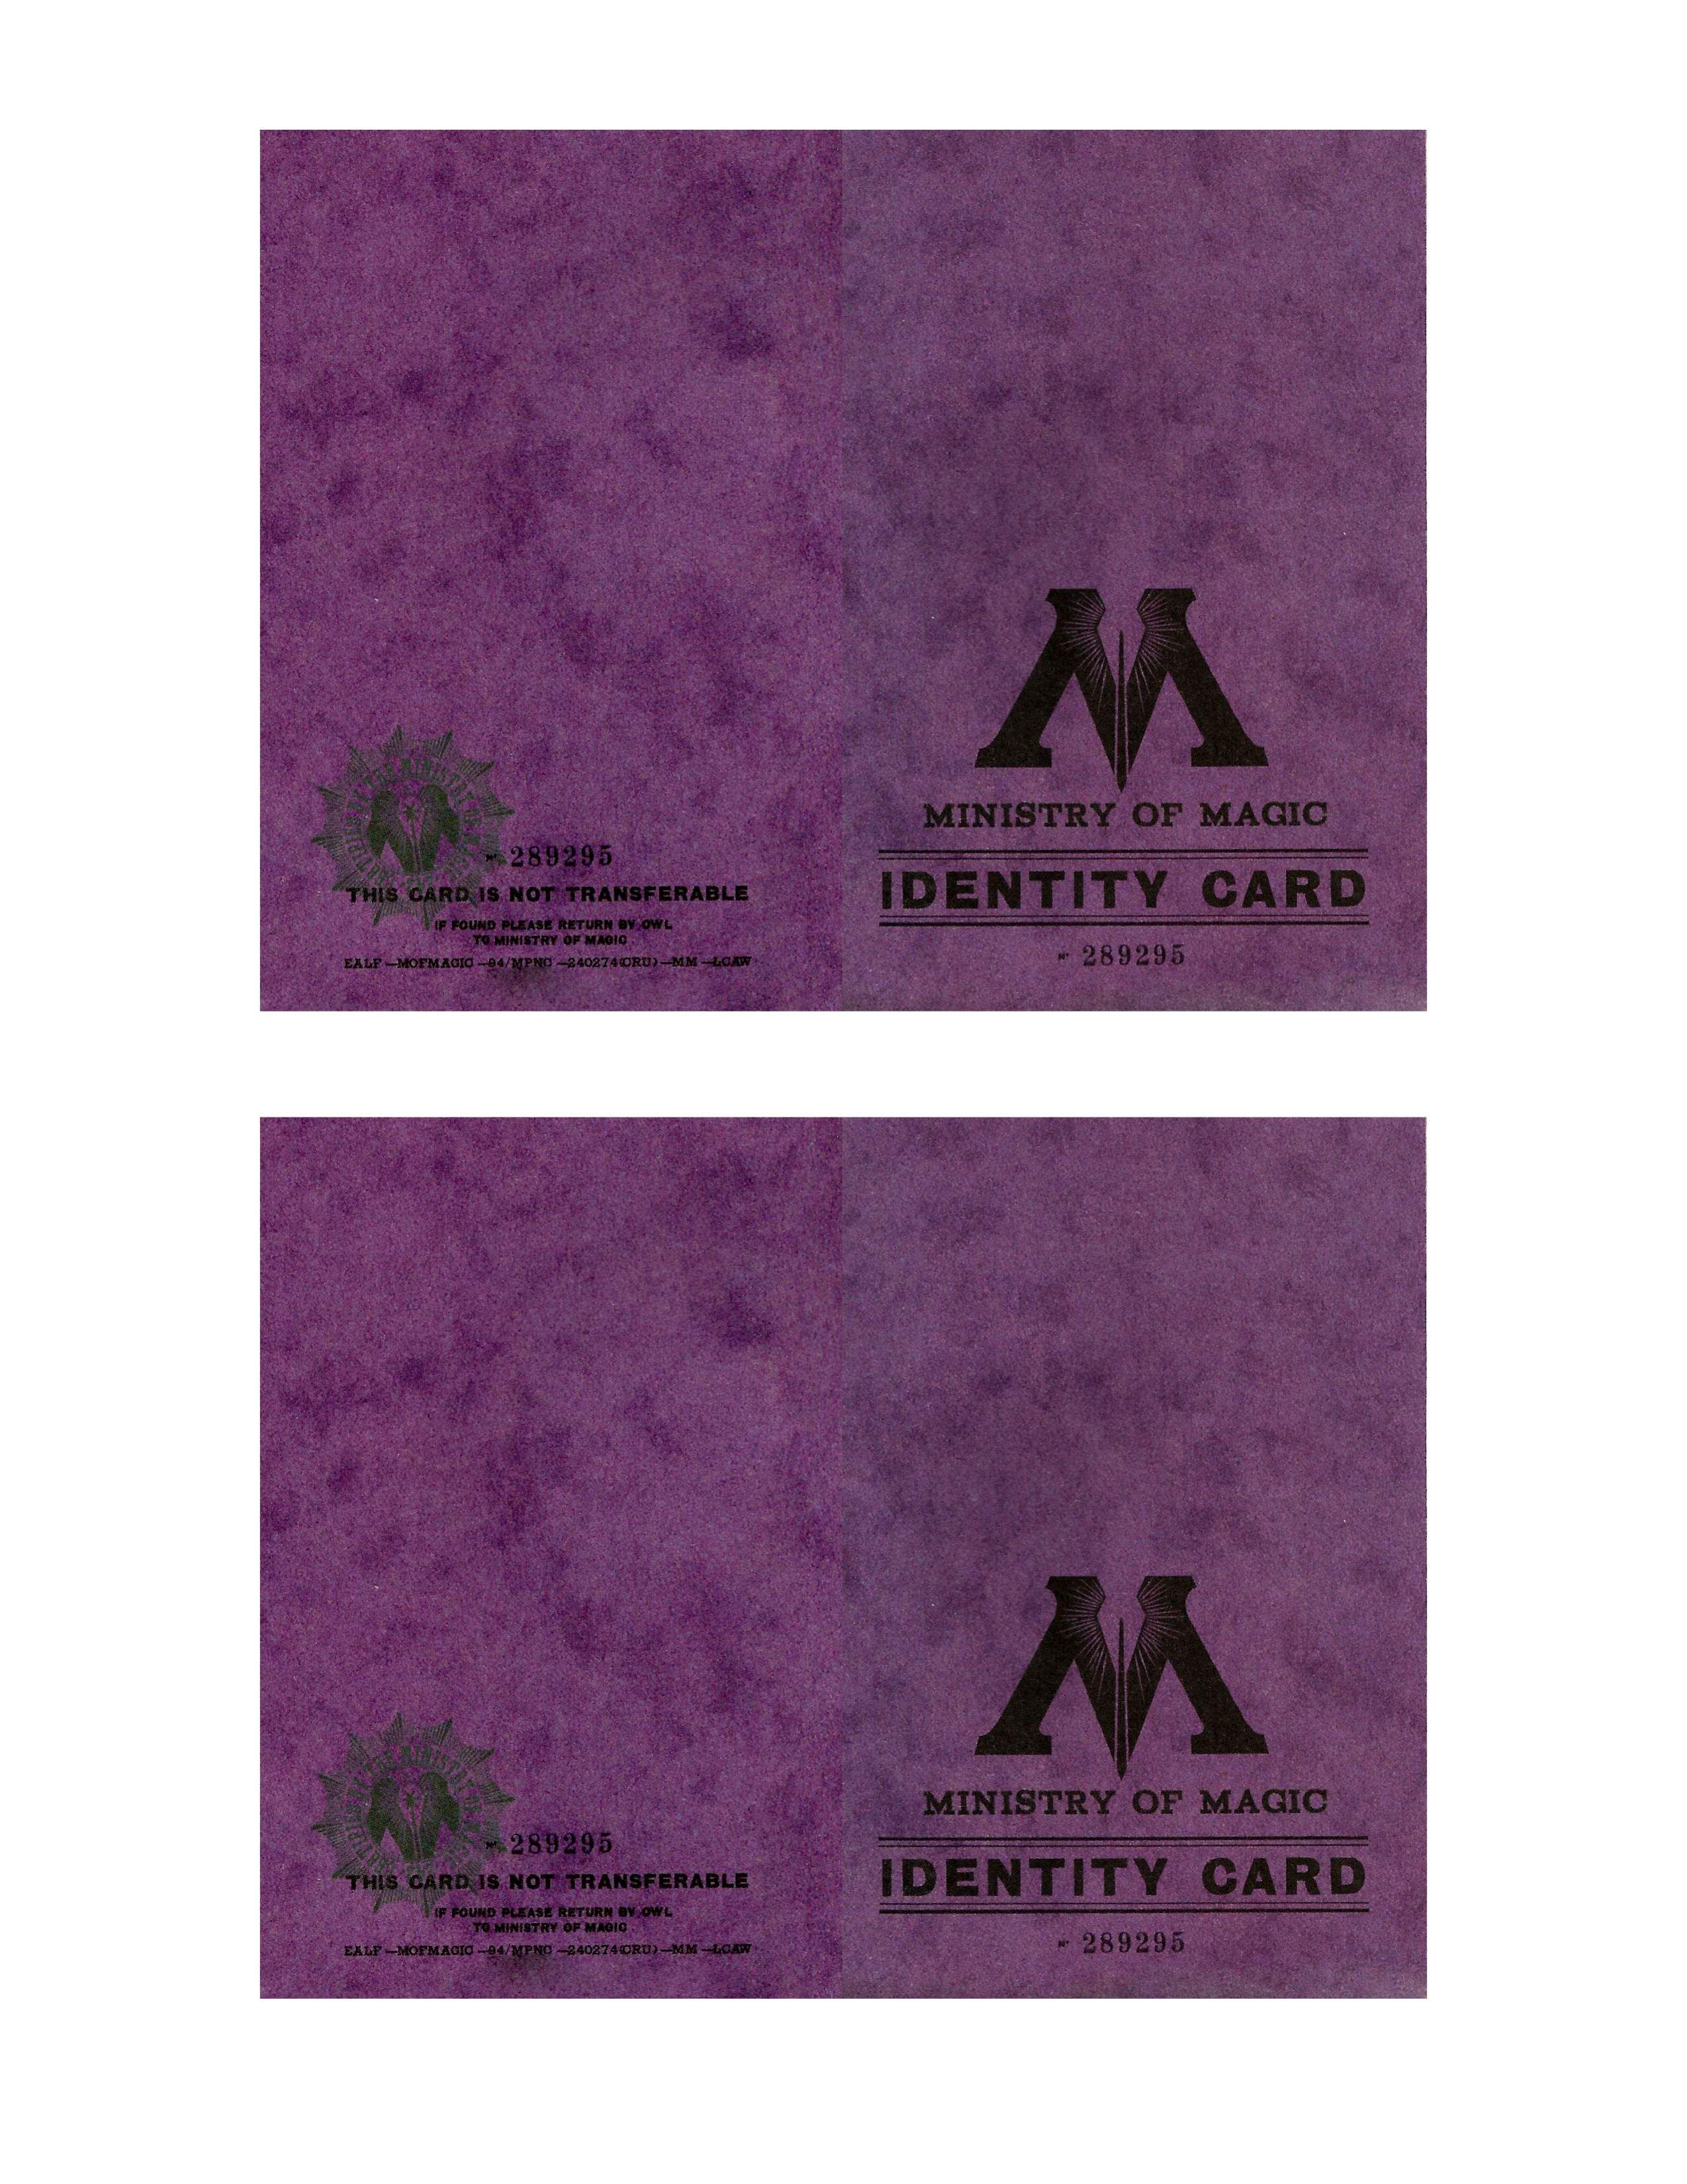 Harry Potter Ministry Of Magic Identification Card Harry Potter Props Ministry Of Magic Harry Potter Cosplay